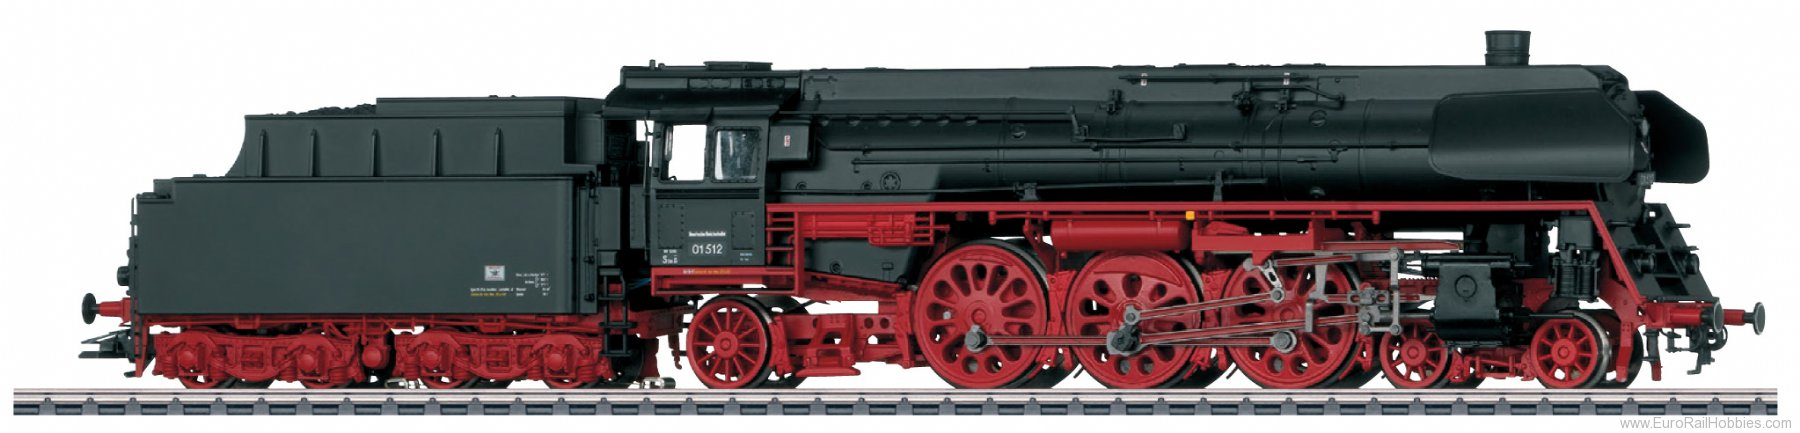 Trix 22905 DR Express Steam Locomotive BR 01.5 with Coal